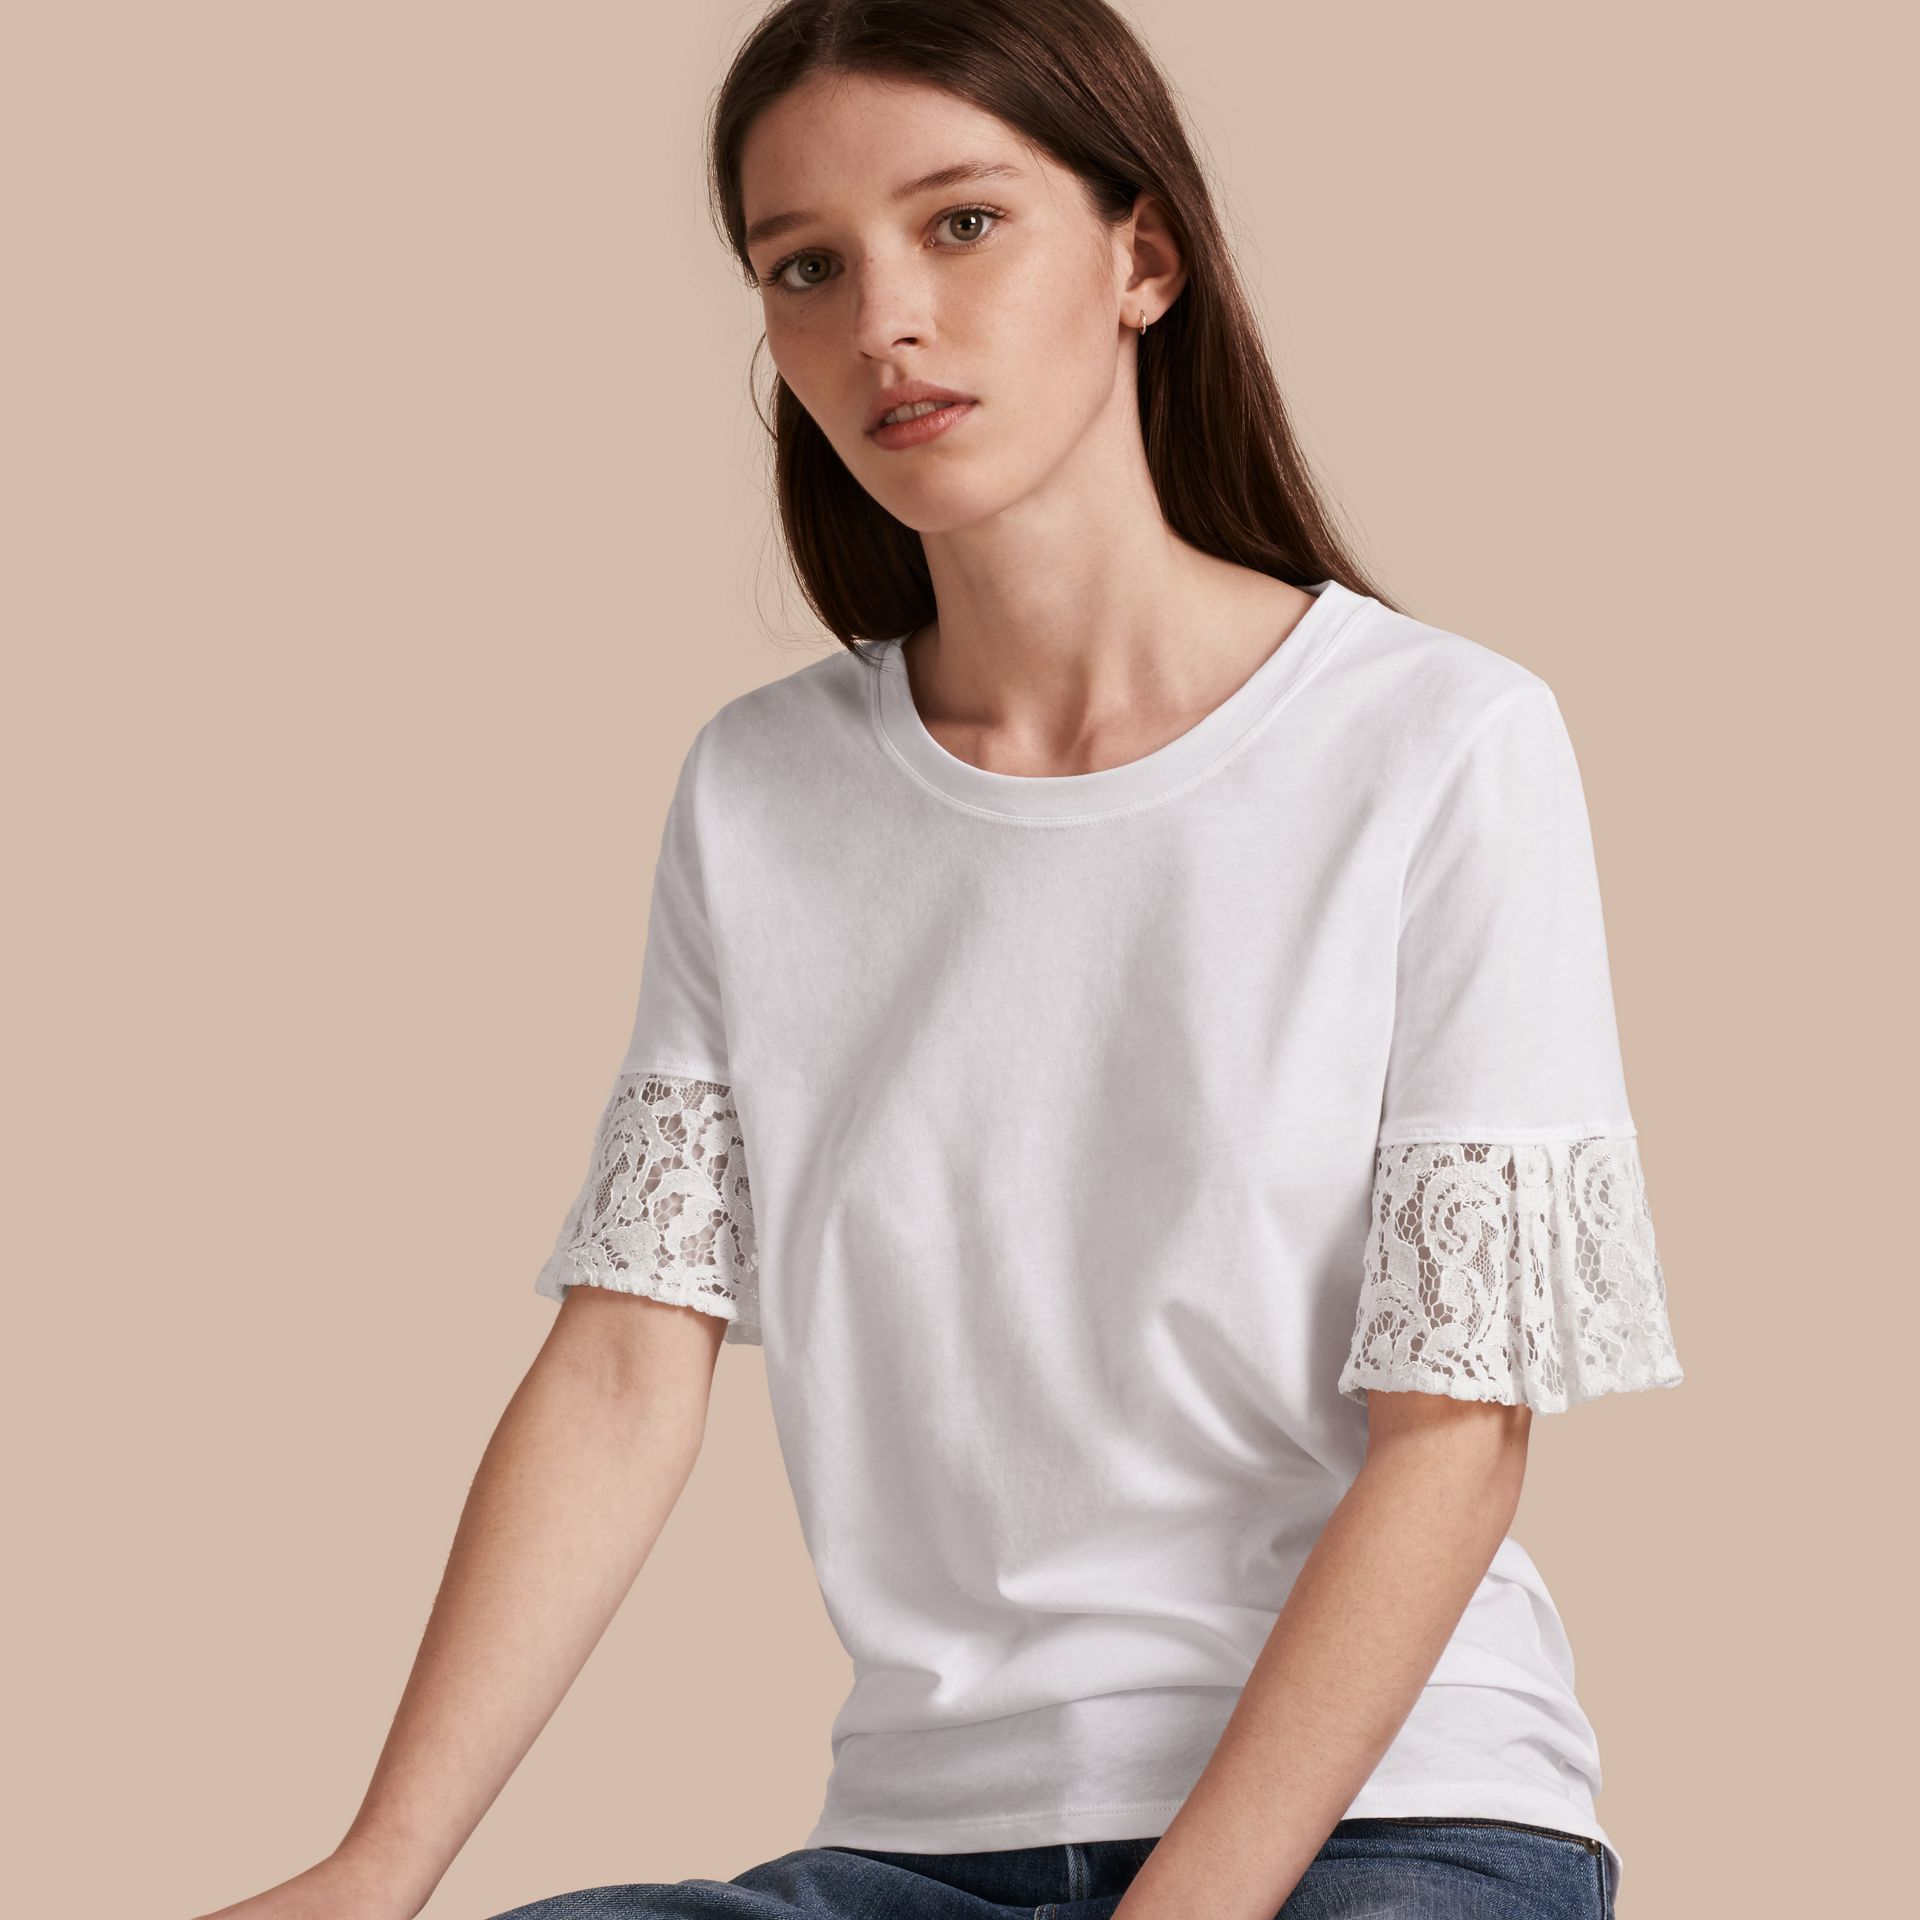 Lace Trim Cotton T-shirt in White - gallery image 1